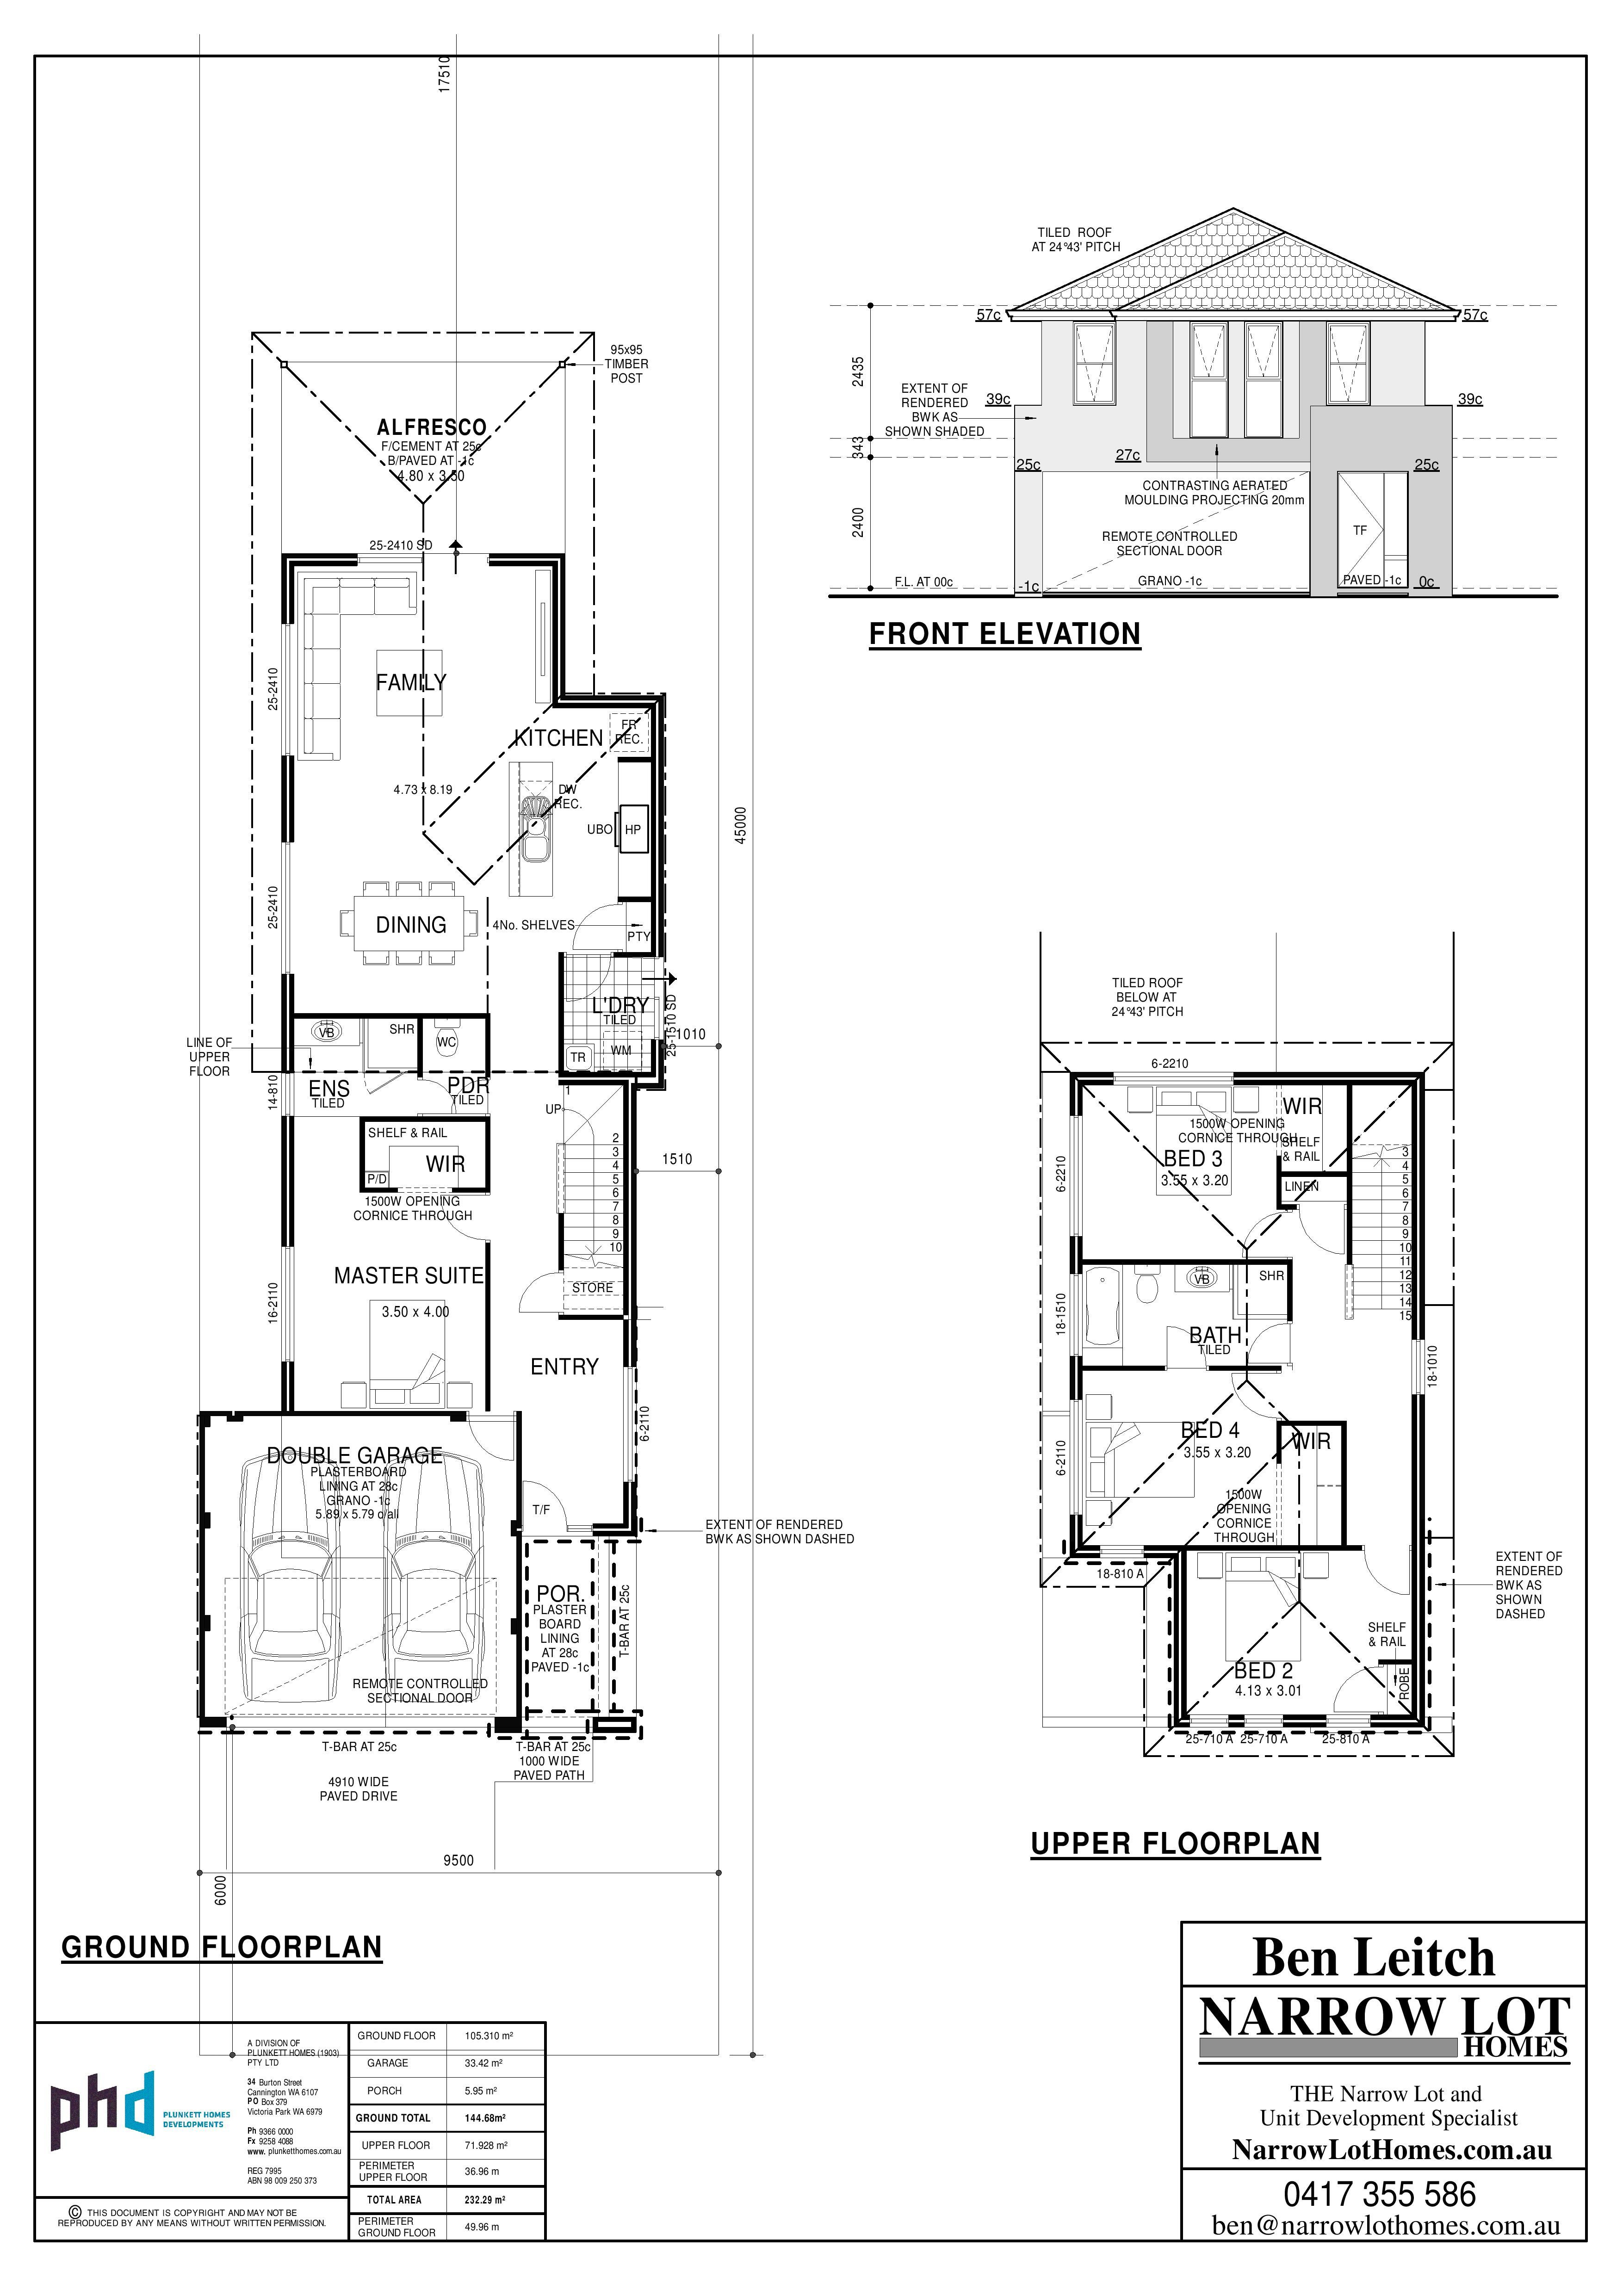 Townhouse Plans Narrow Lot Best Of Apartments townhouse Plans for Small Blocks Narrow Lot Homes